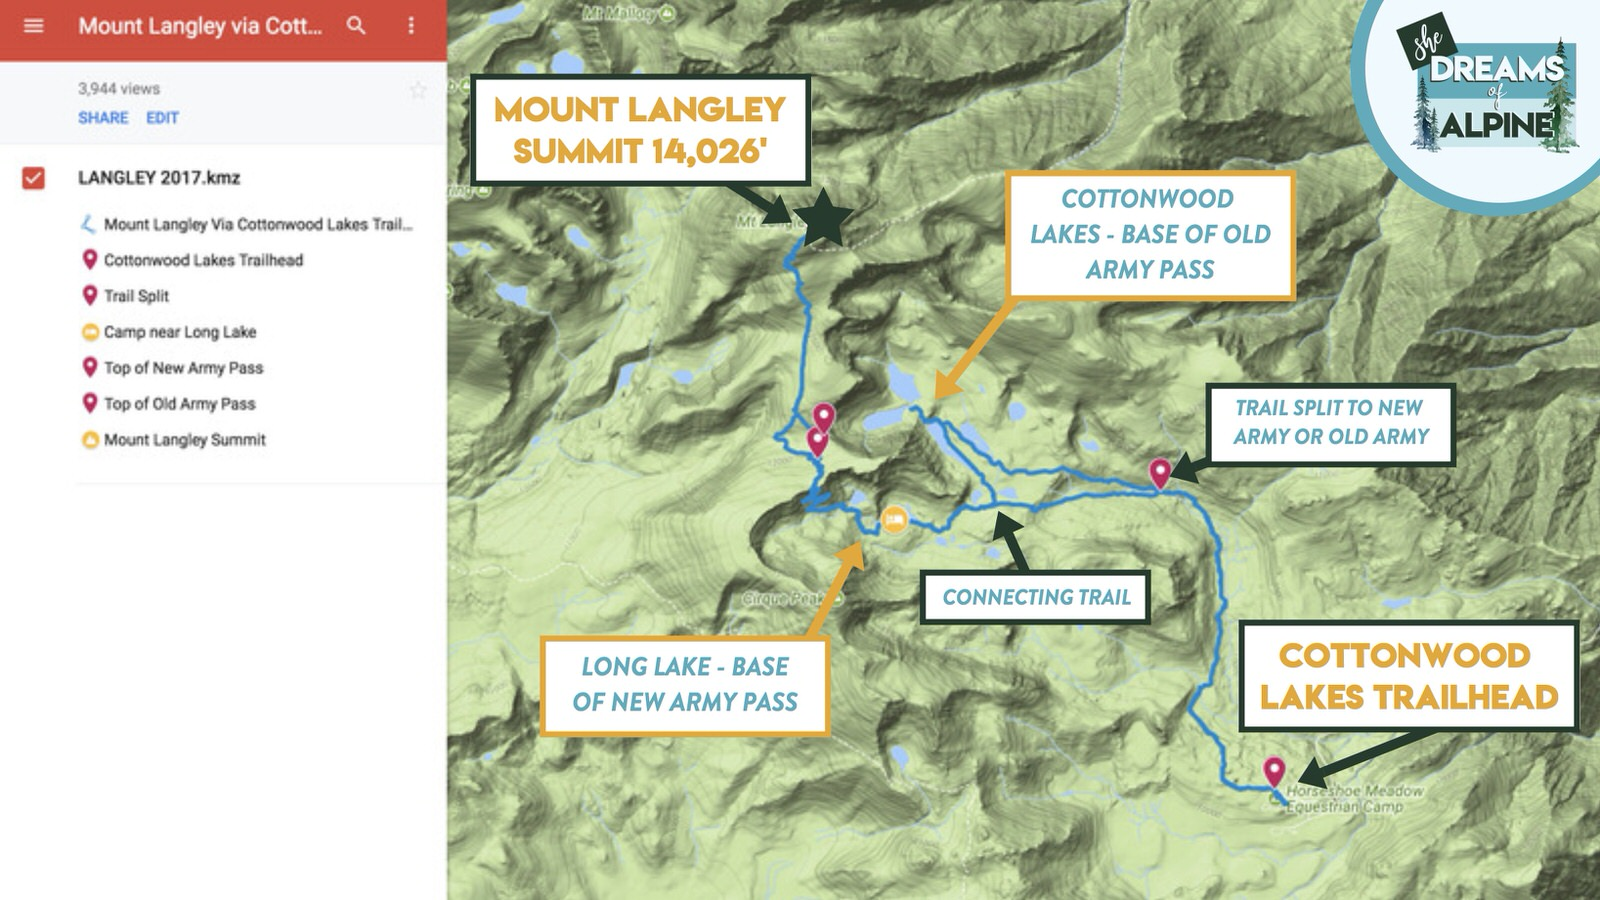 Details on the Cottonwood Lakes Trail map up to the summit of Mount Langley.